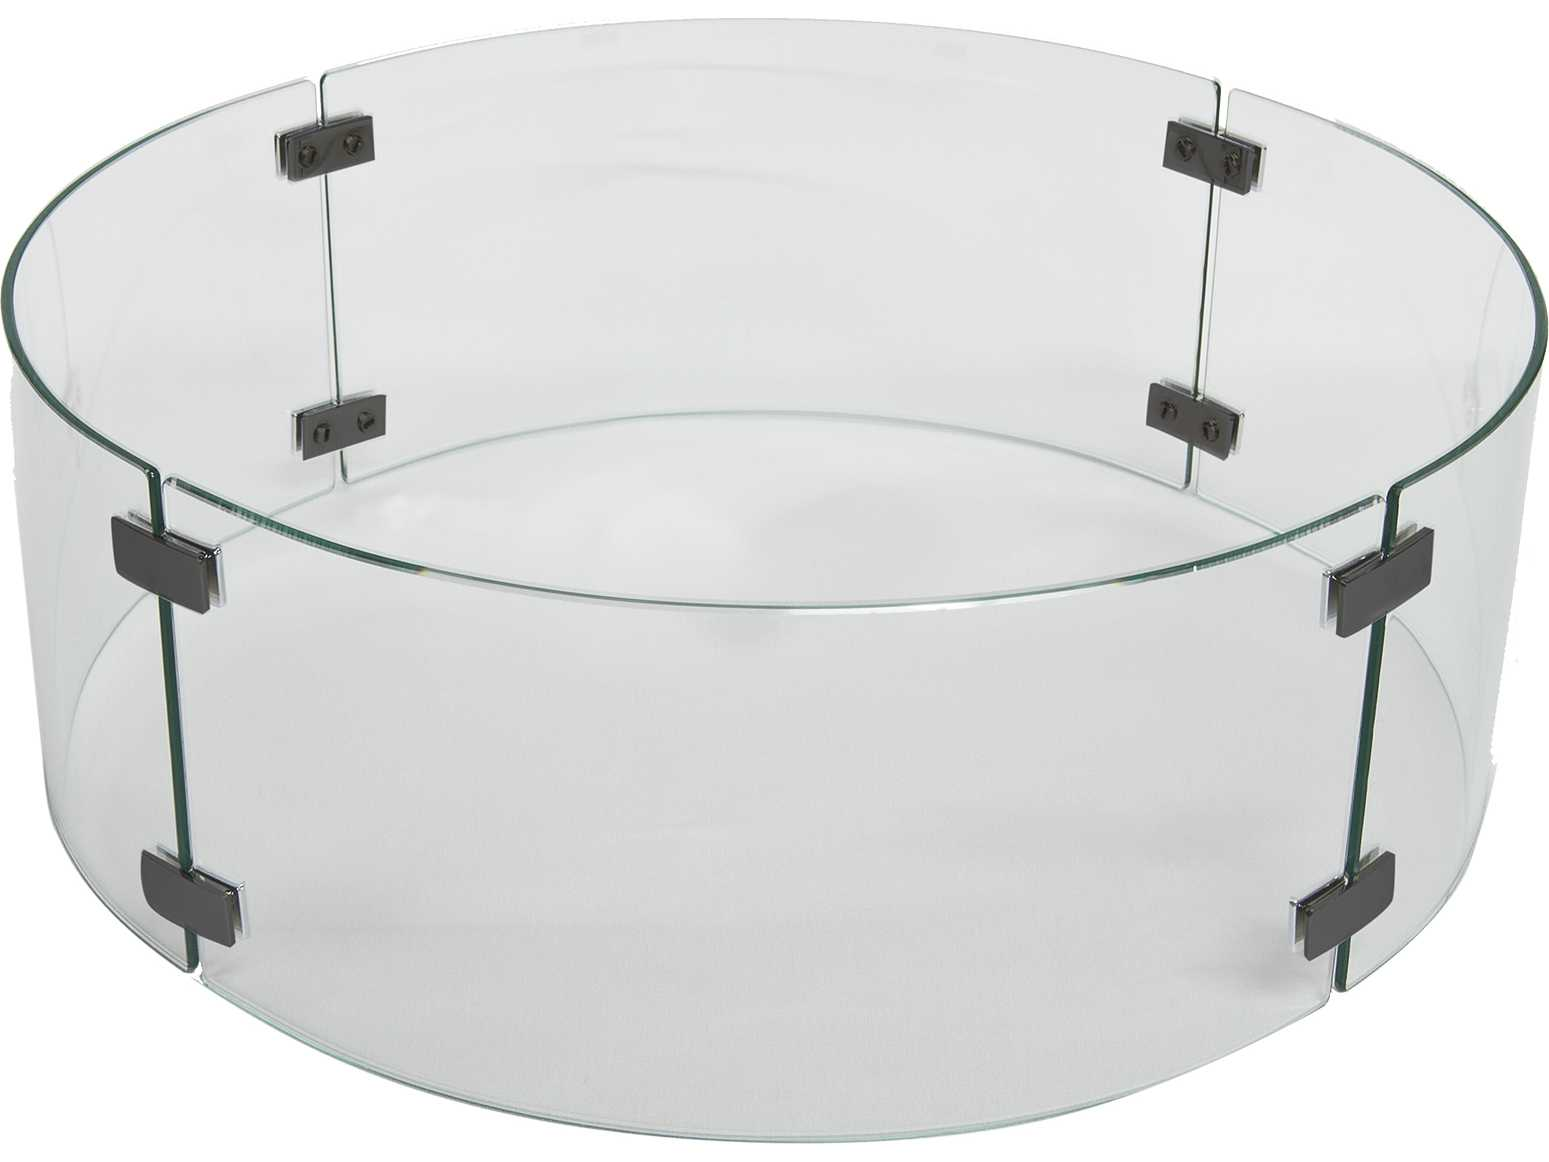 Ow Lee Casual Small Round Glass Fire Guard 51 142g